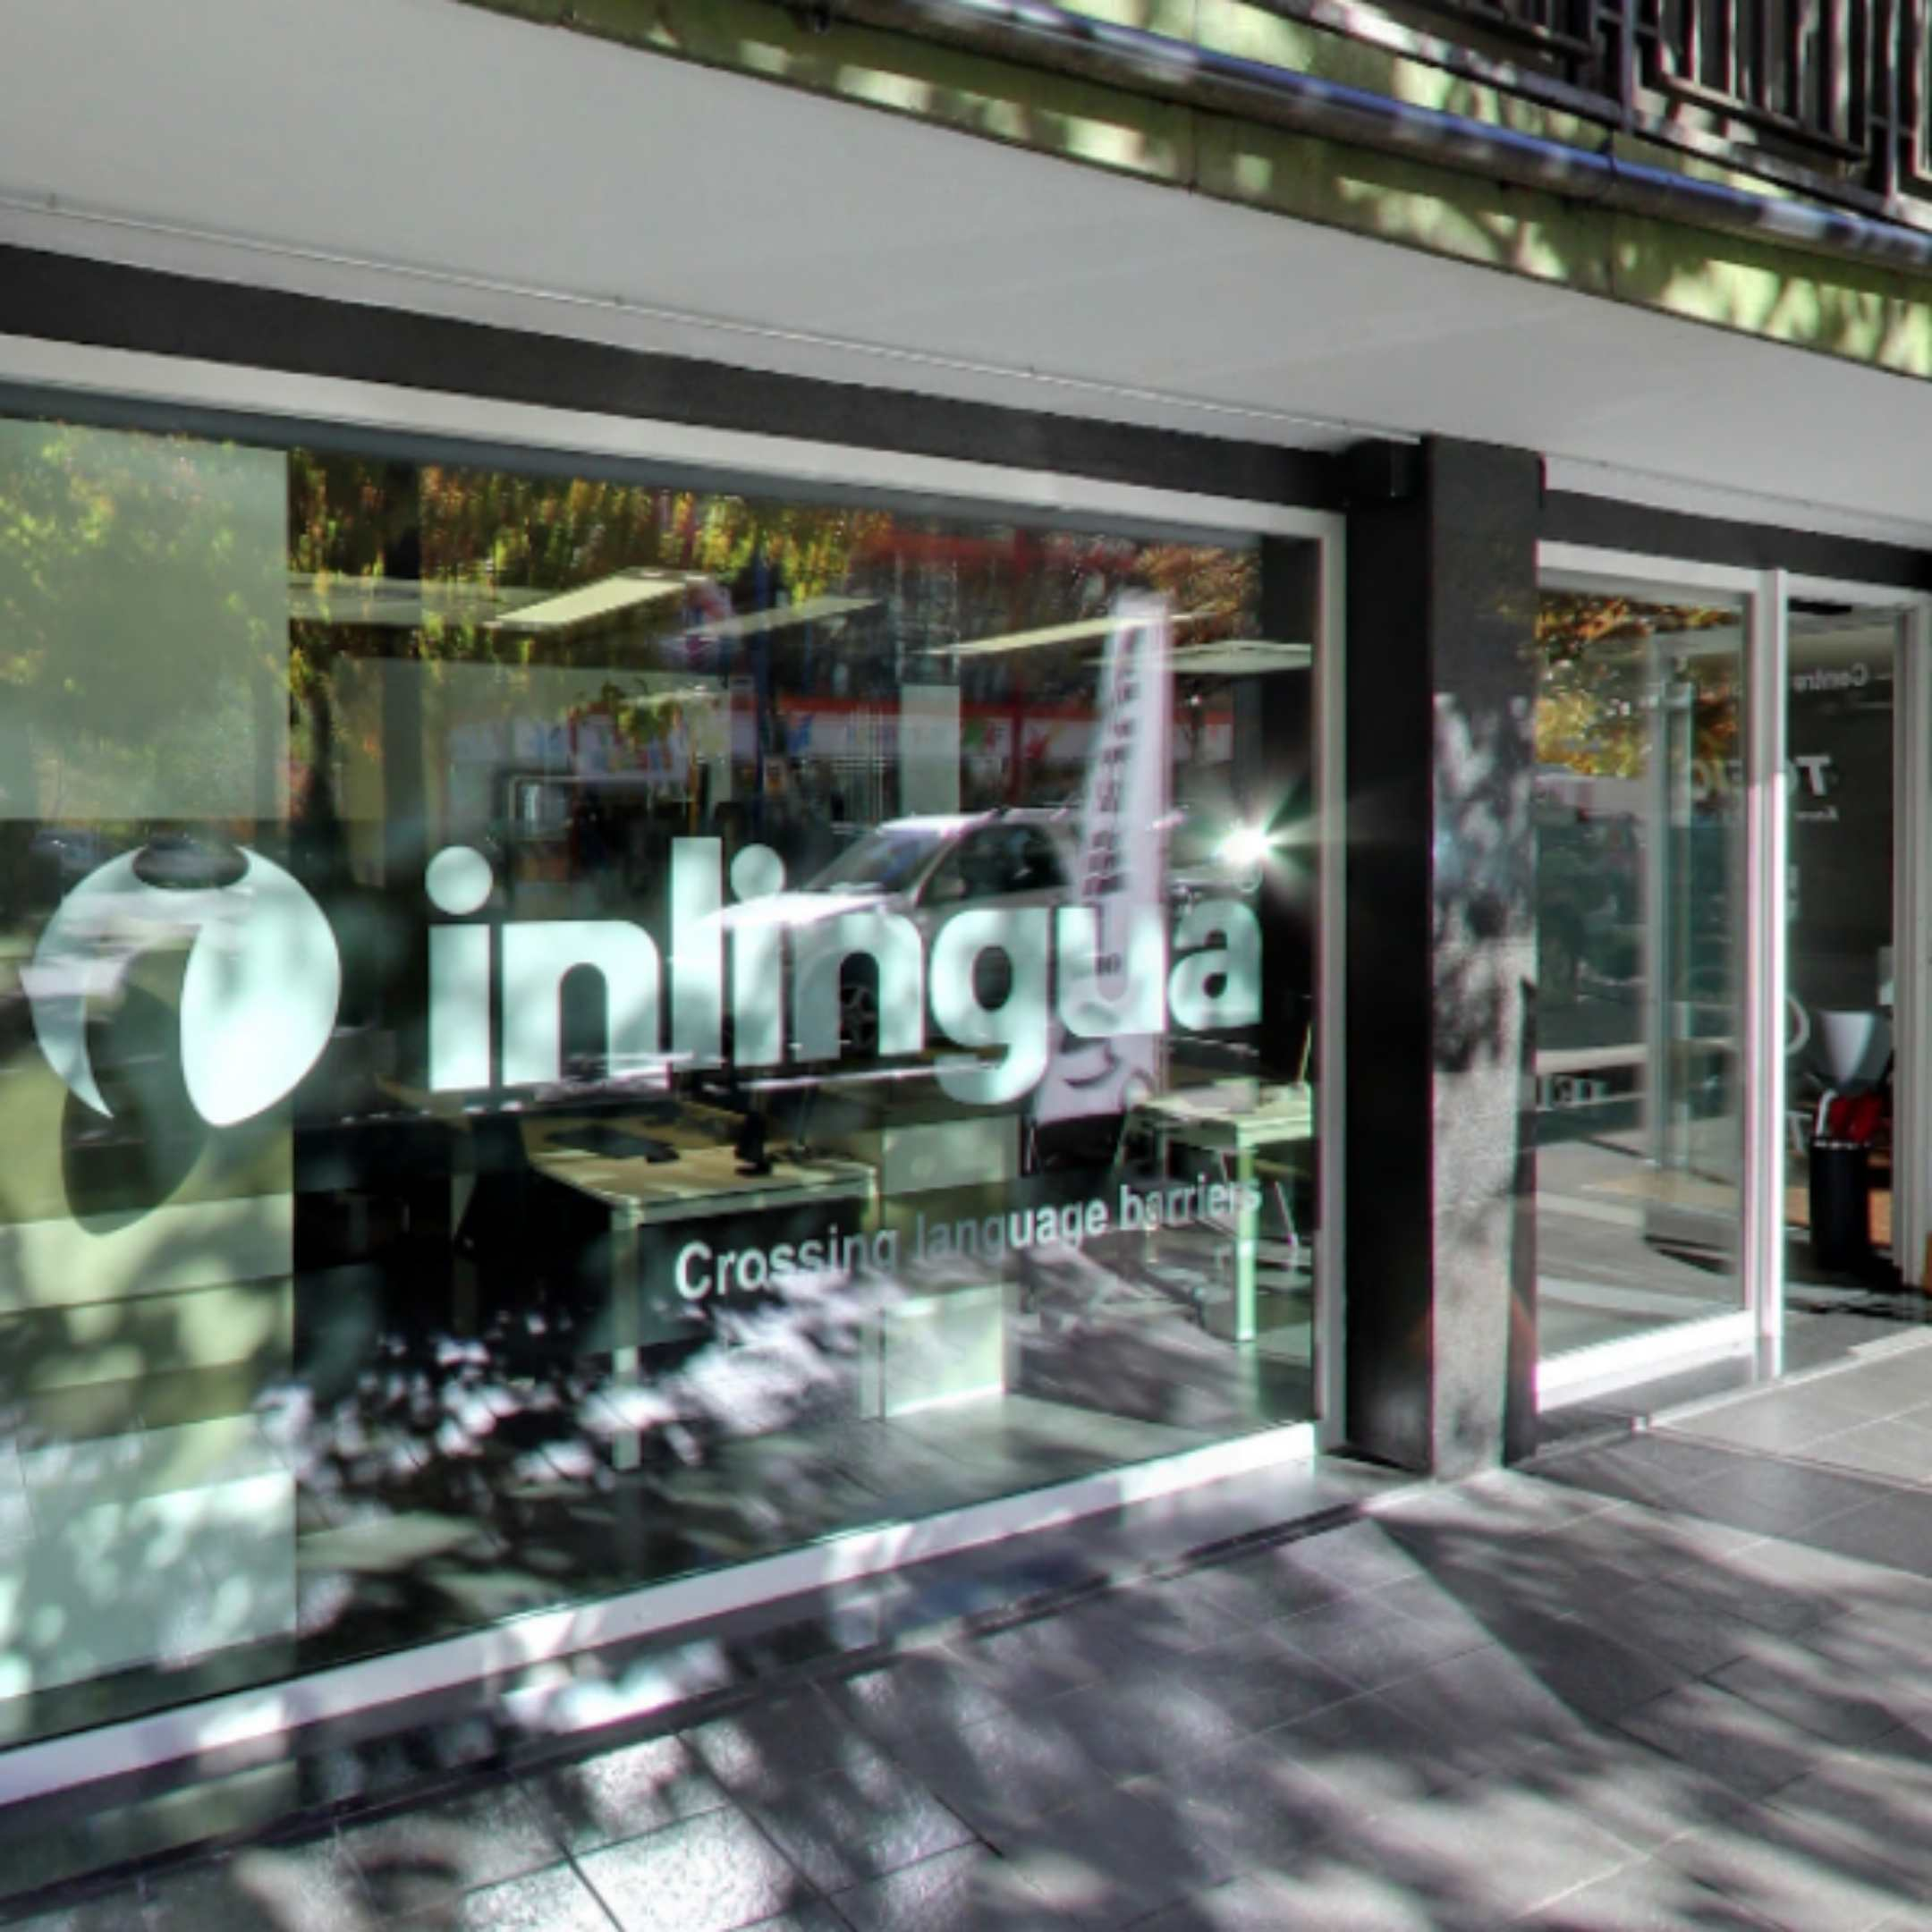 inlingua Central